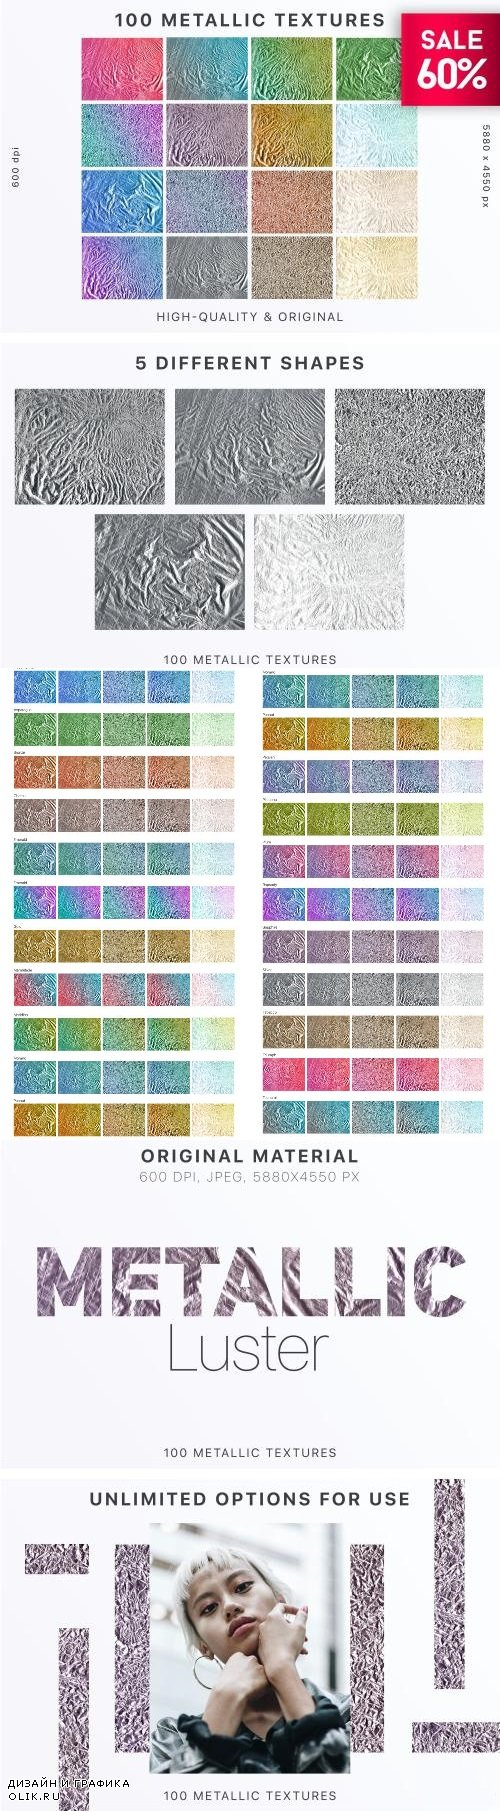 100 Original Metallic Textures - 2270594